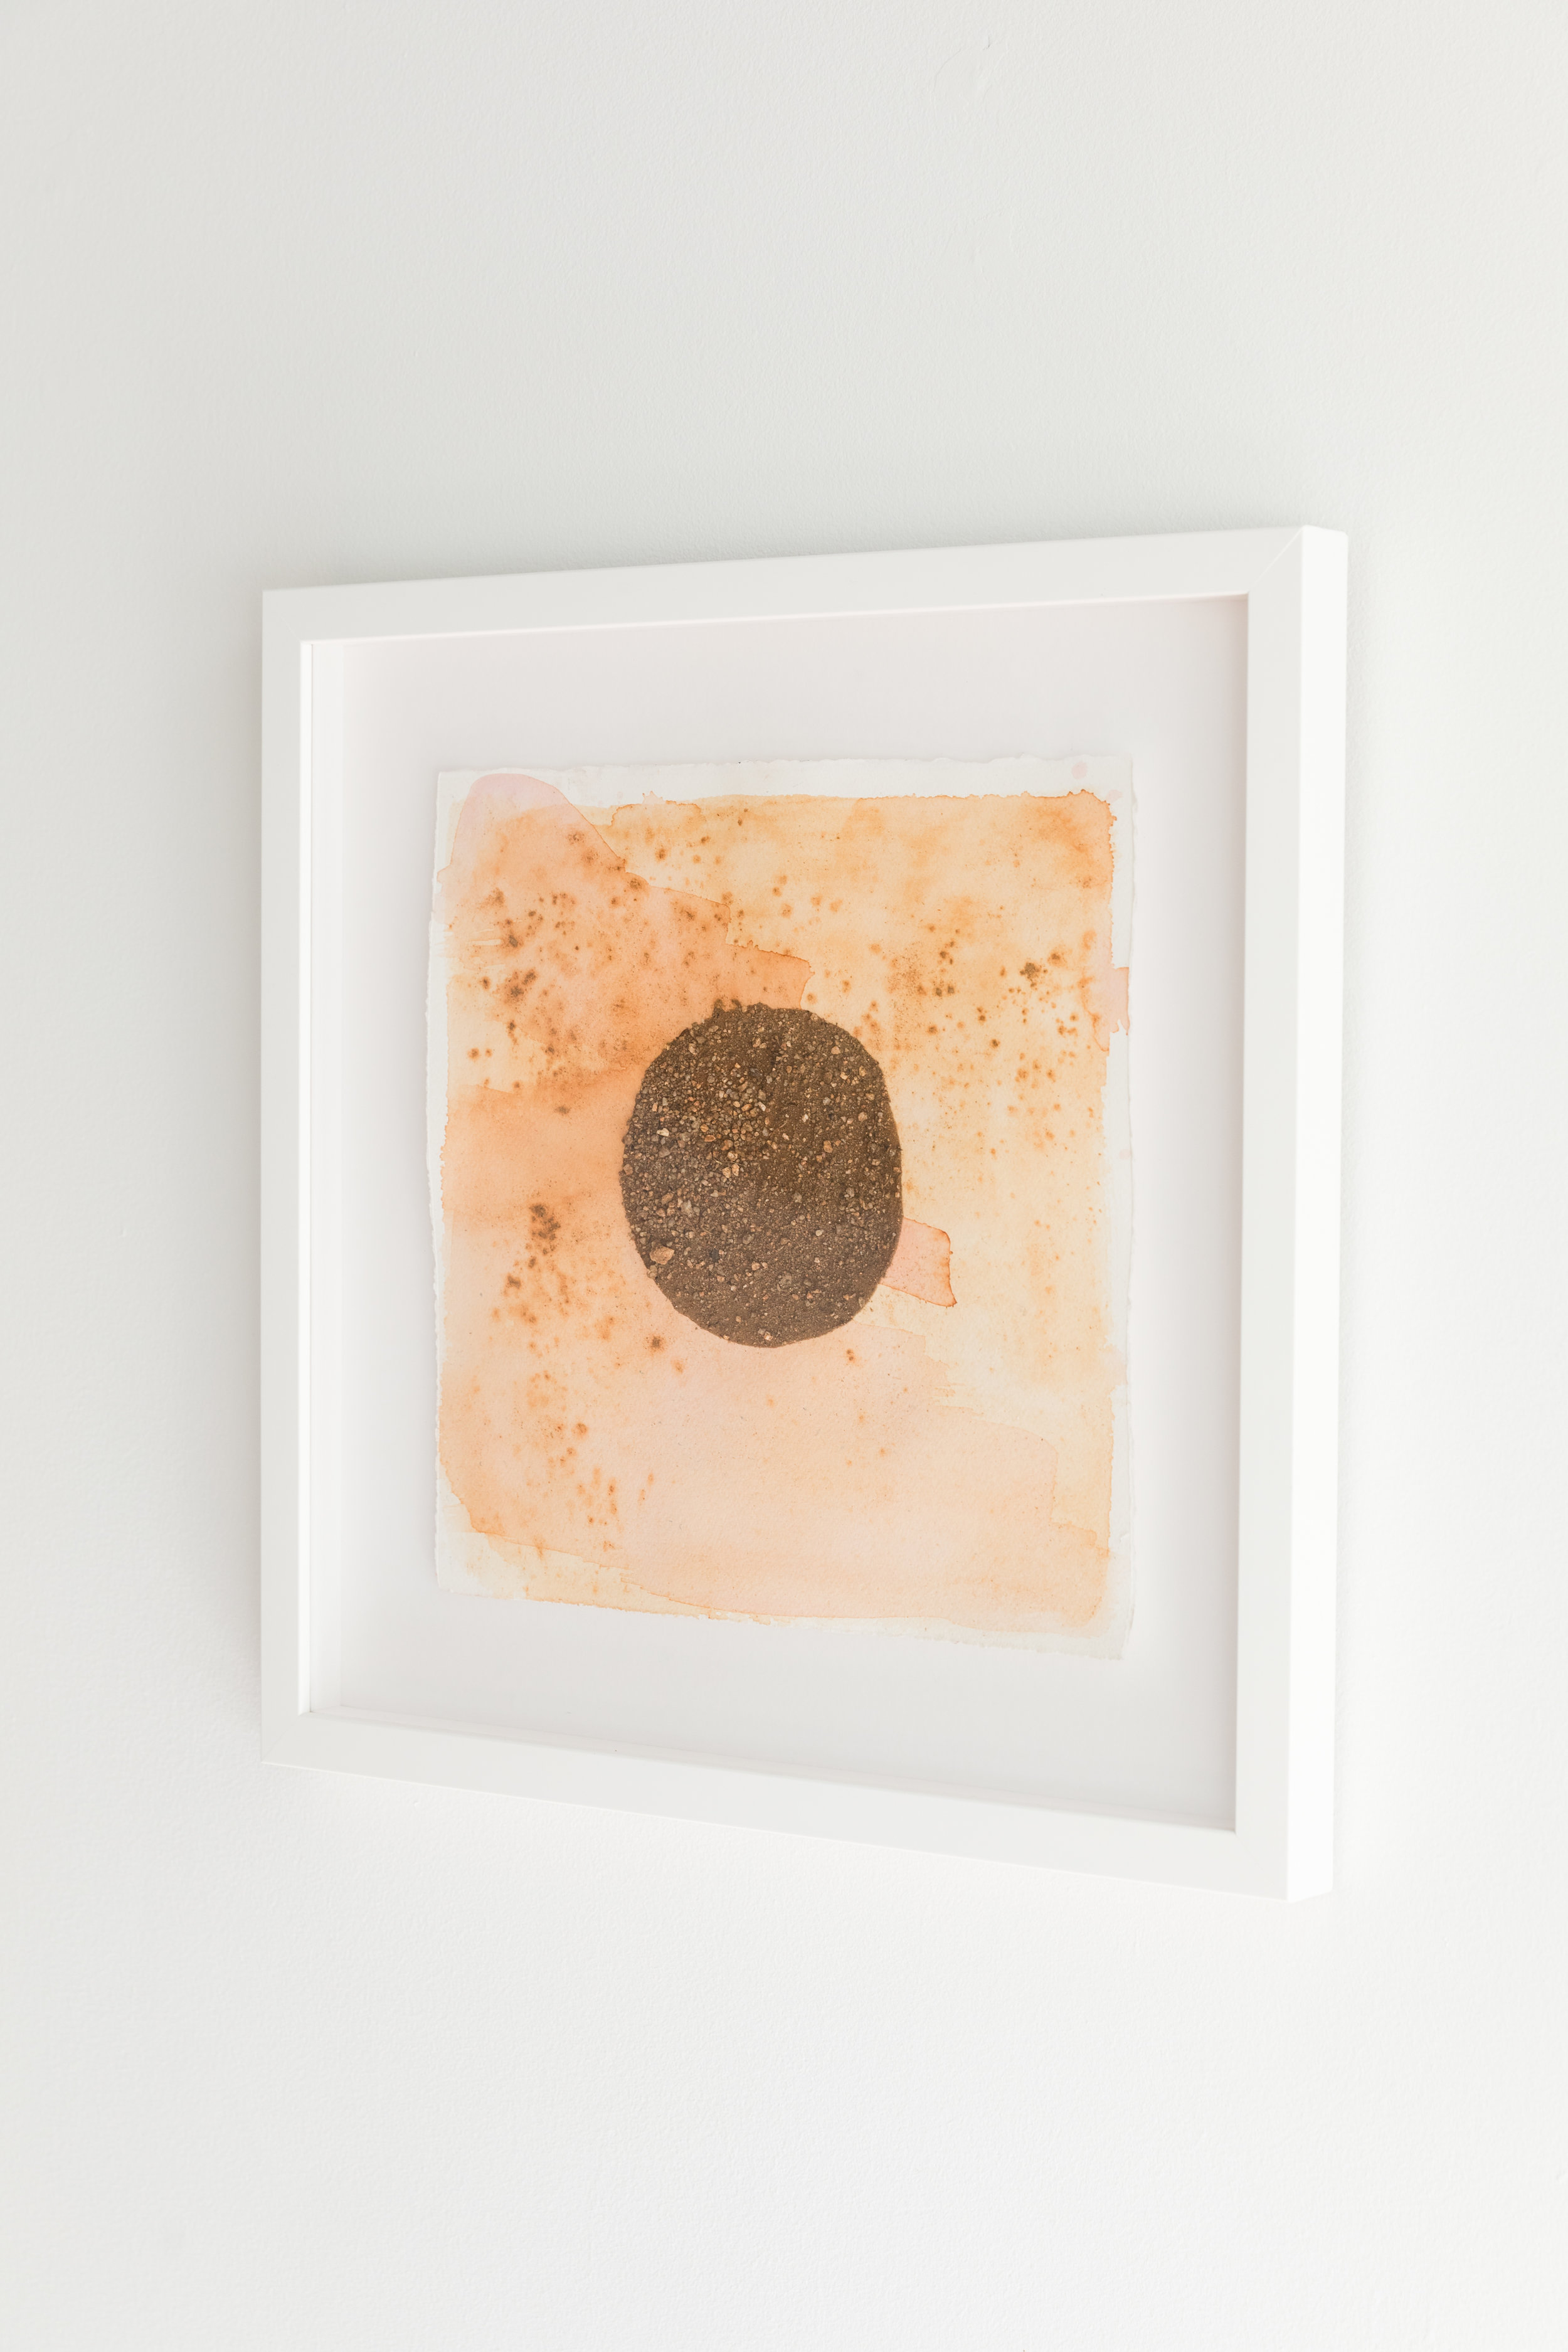 Oaxacan Sunset II  , 2017, cotton paper, cochineal, sand, henna, 9 x 9 inches framed